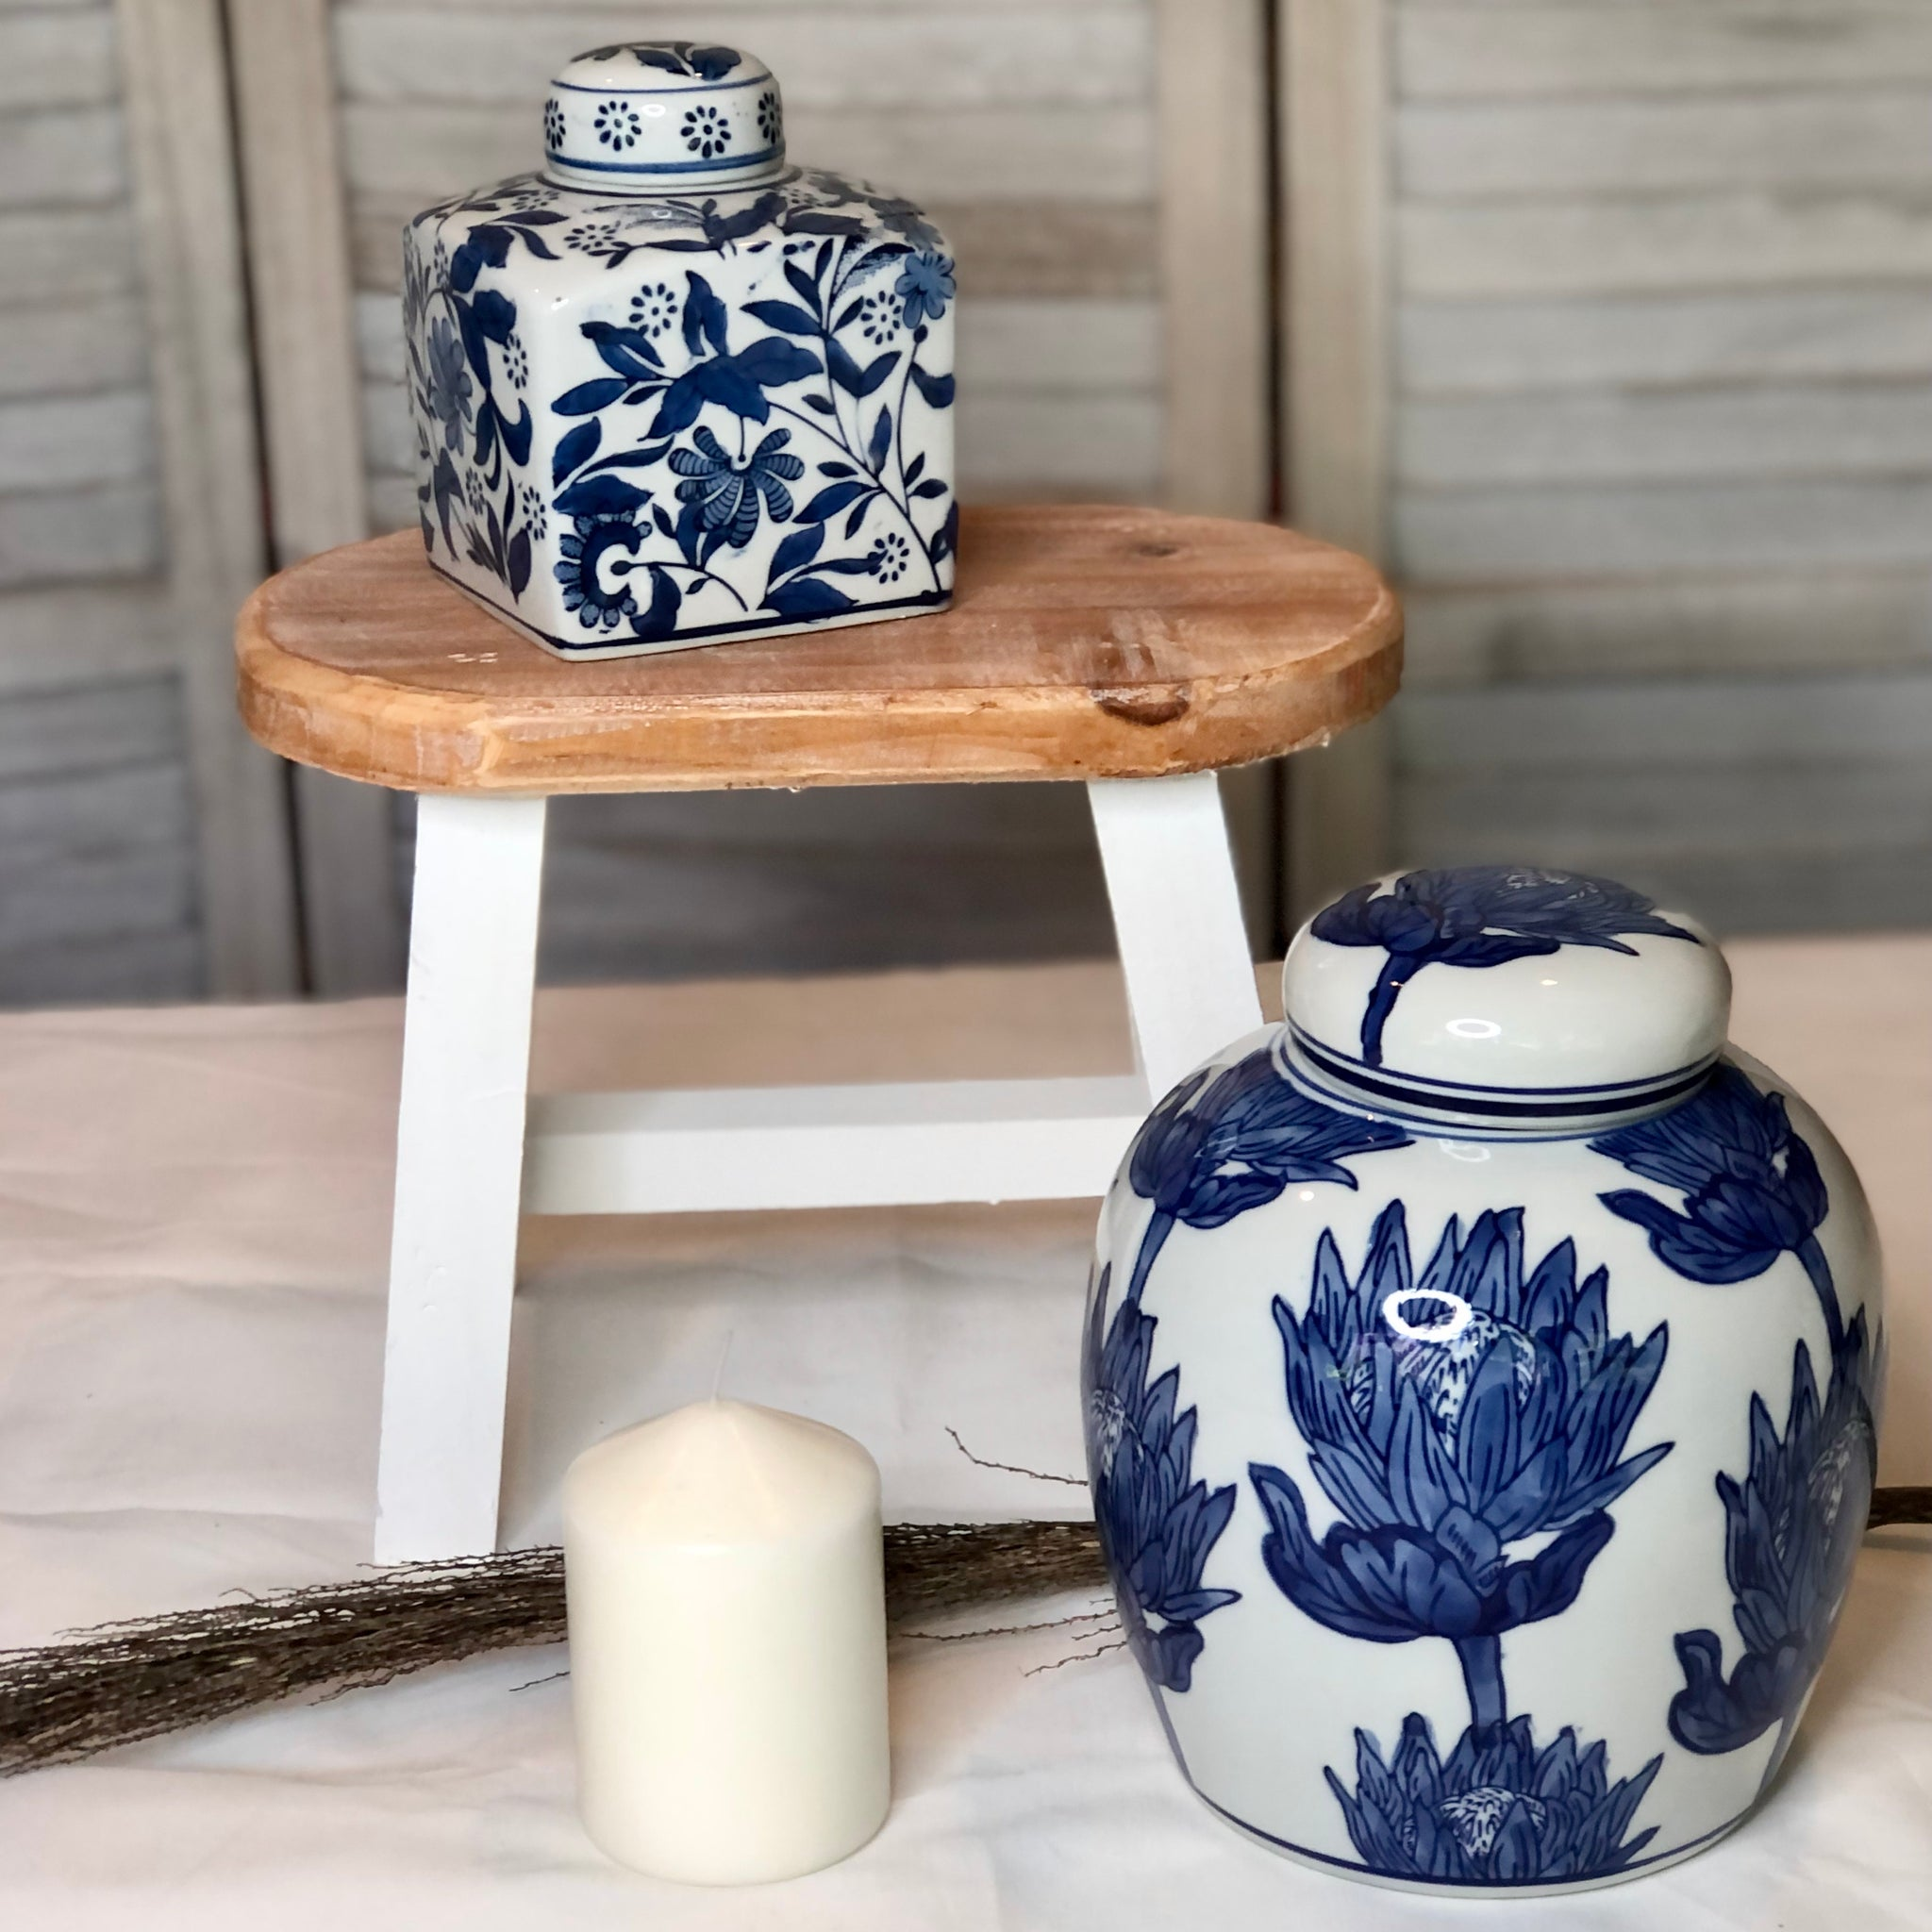 Gift, decor and crystal shop Australia: Blue + white floral ginger jar